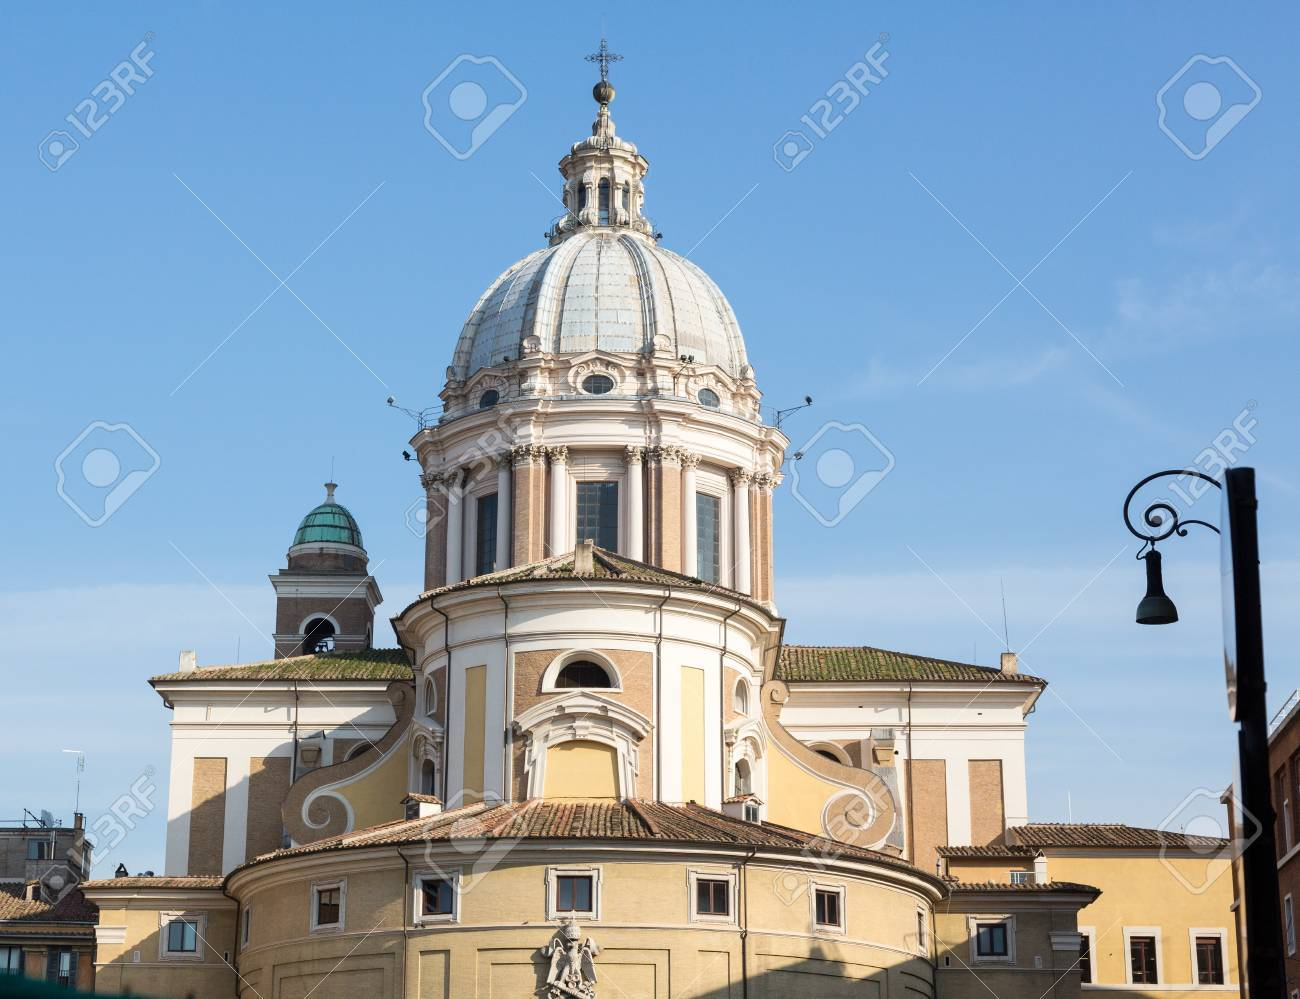 Detail of dome on church of San Carlo al Corso in Rome Italy Stock Photo - 18152704